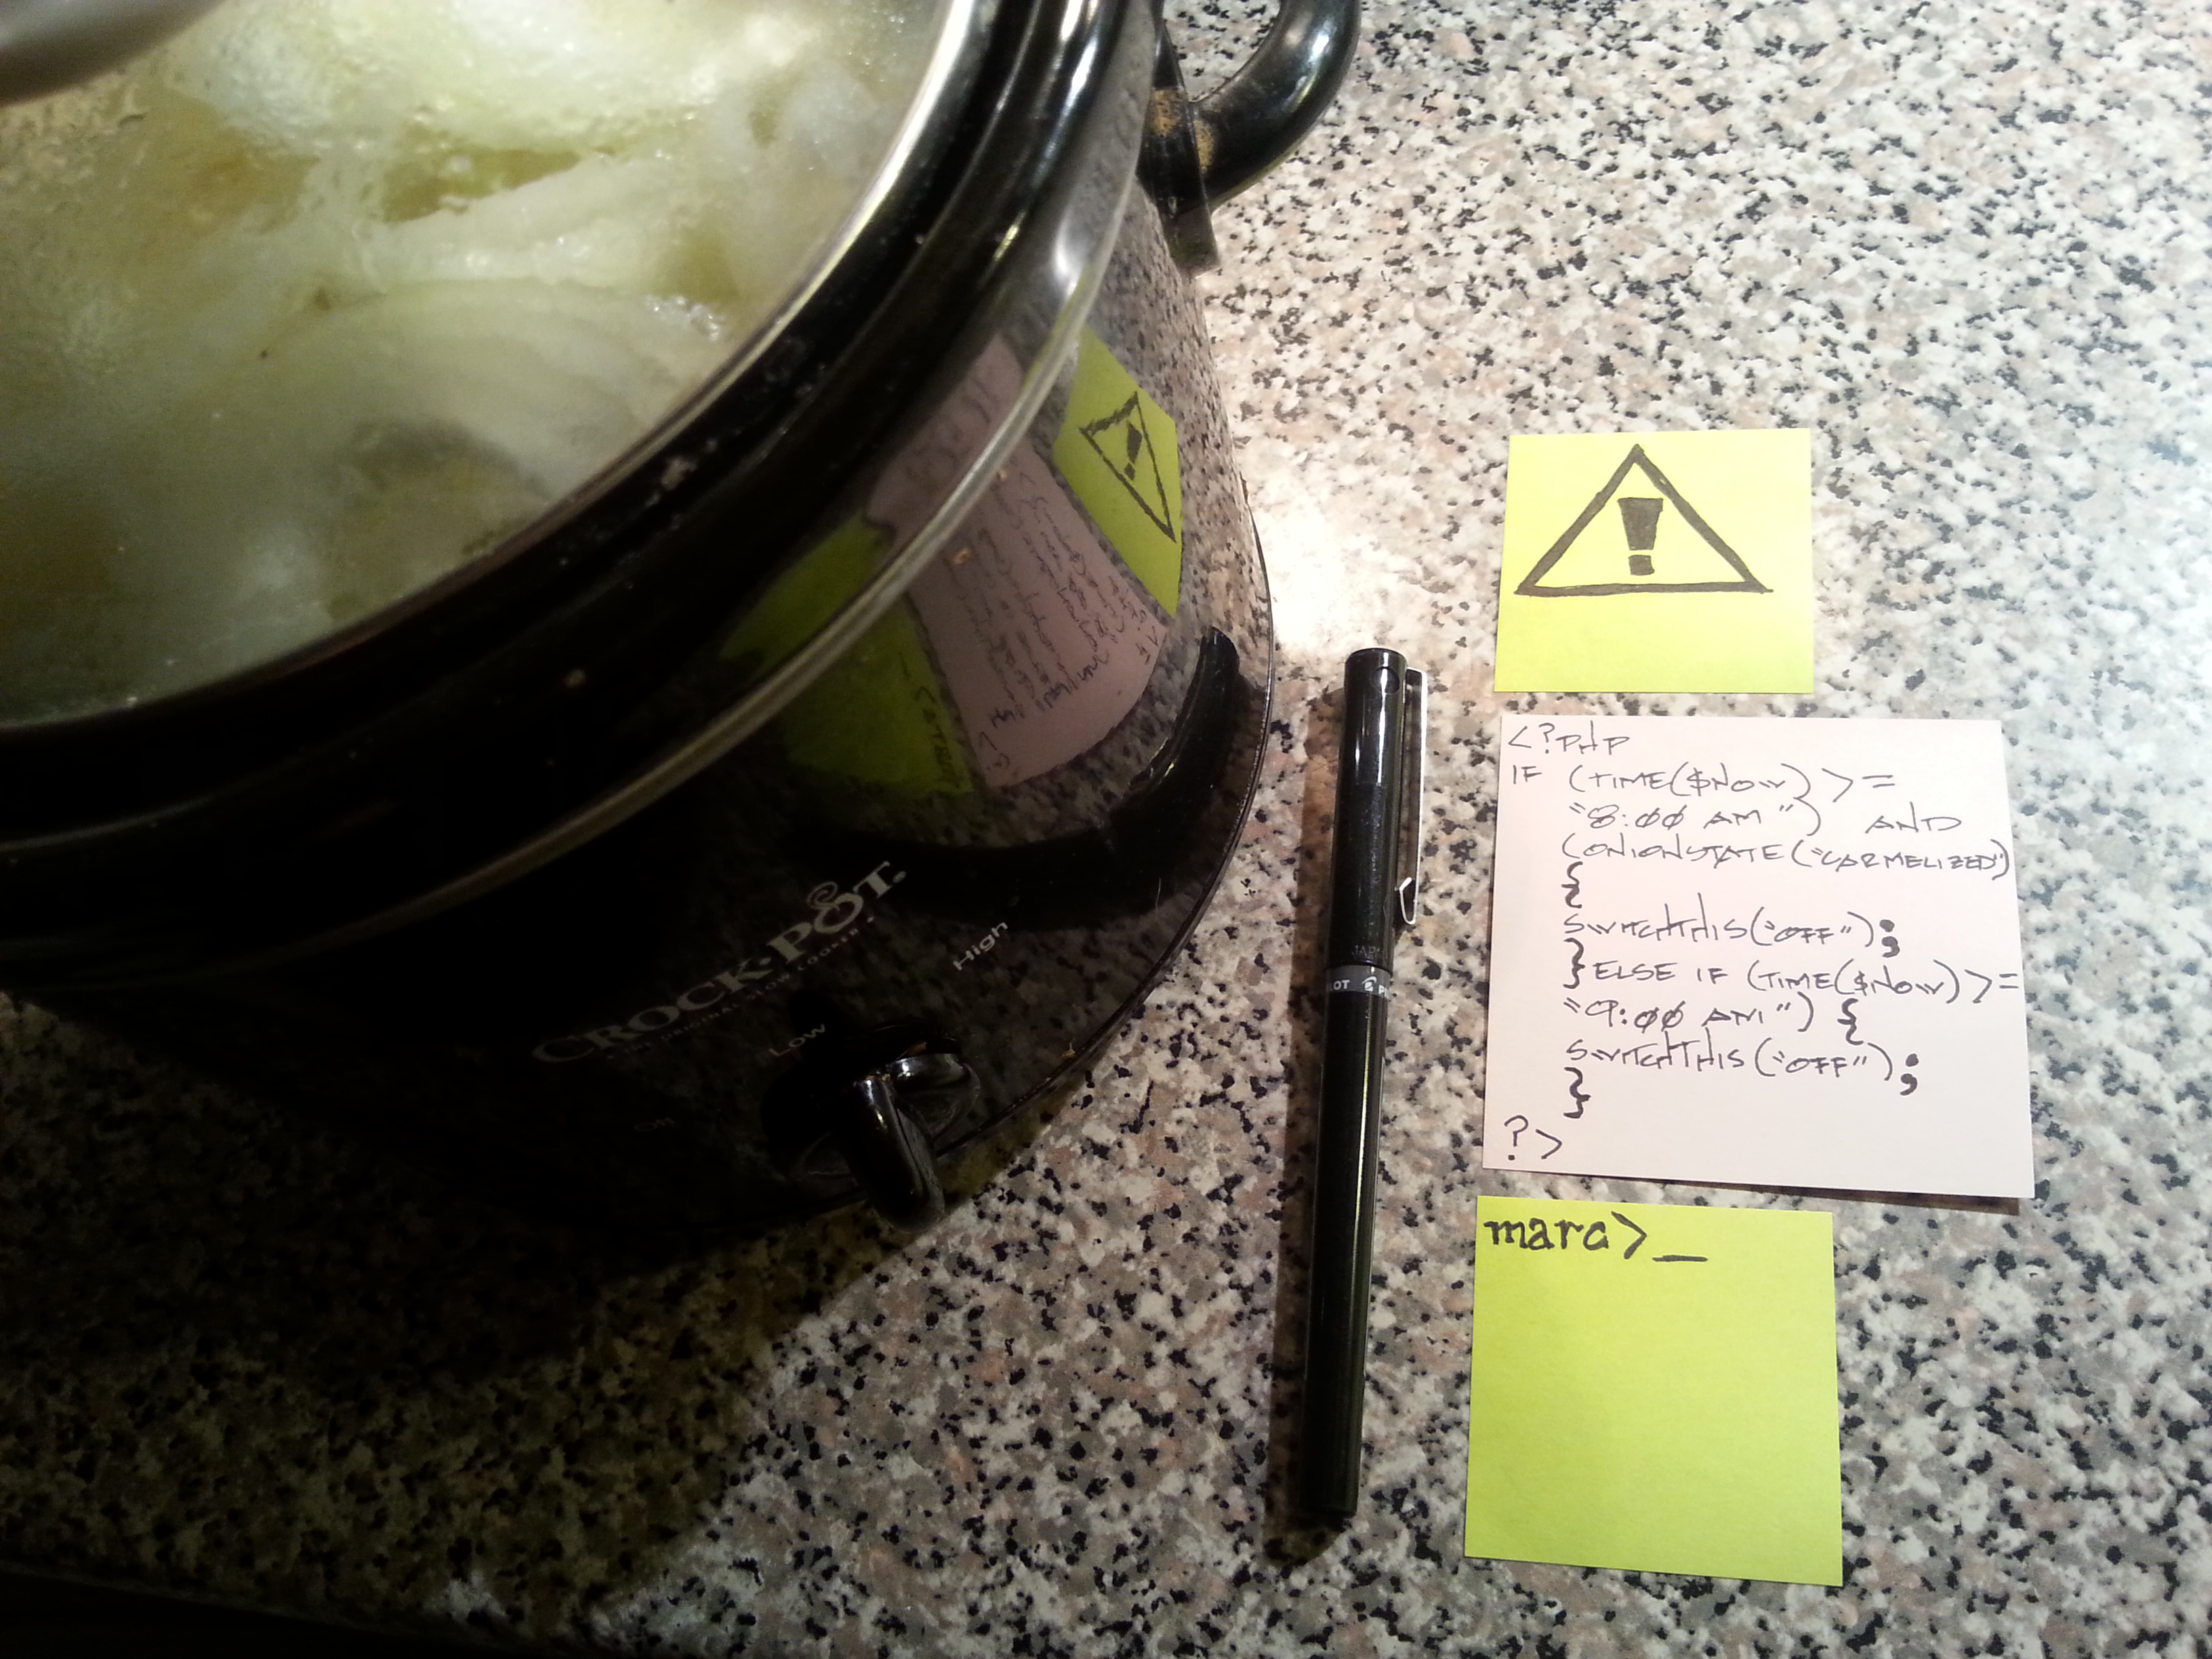 crockPotProcedures2014-04-26 01.29.07